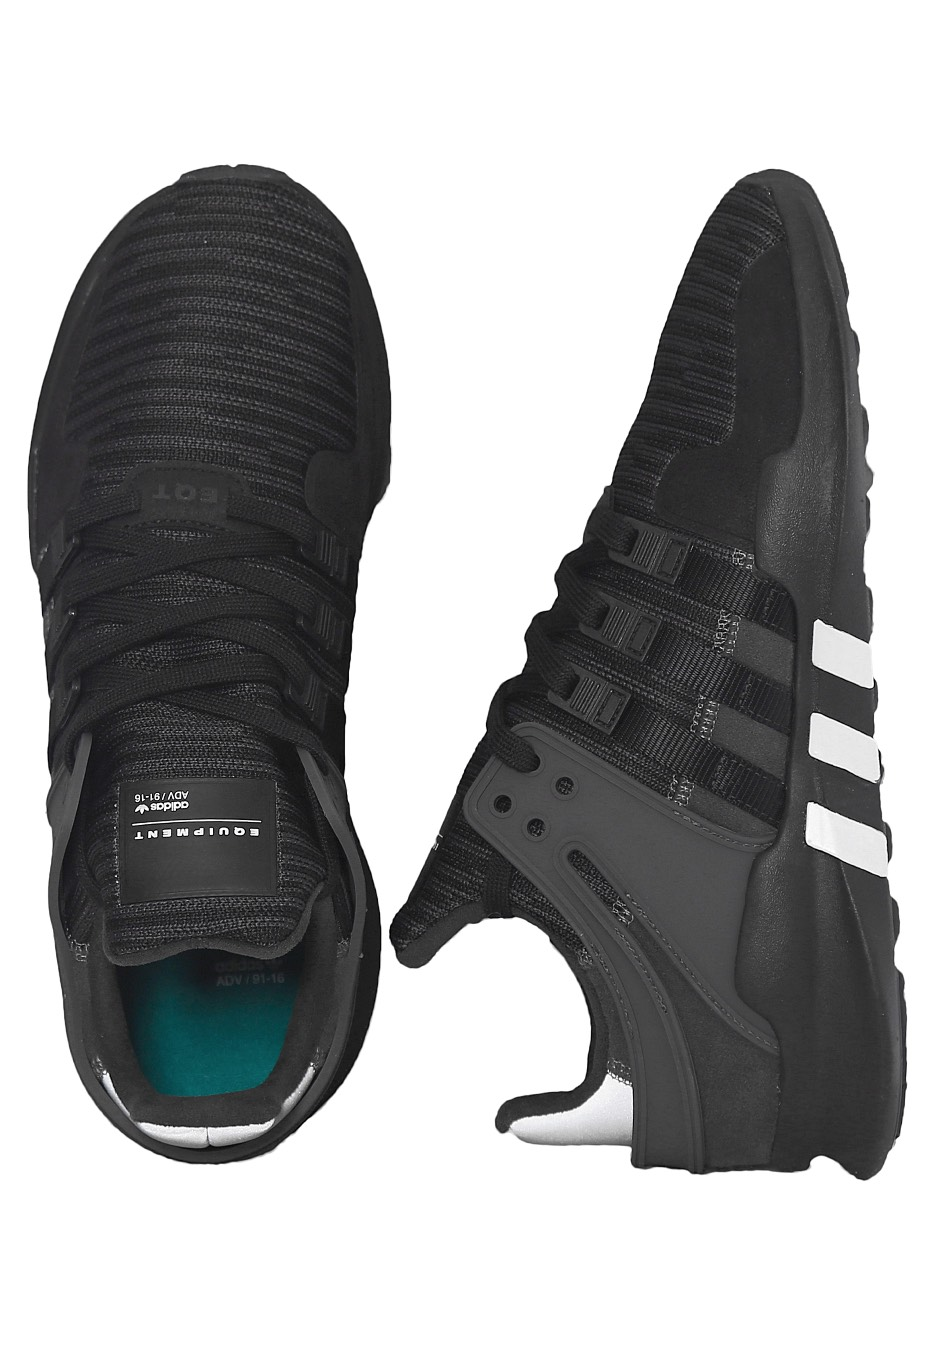 8b2c3679e936 Adidas - EQT Support ADV Core Black Utility Black Dgh Solid Grey - Shoes -  Impericon.com Worldwide